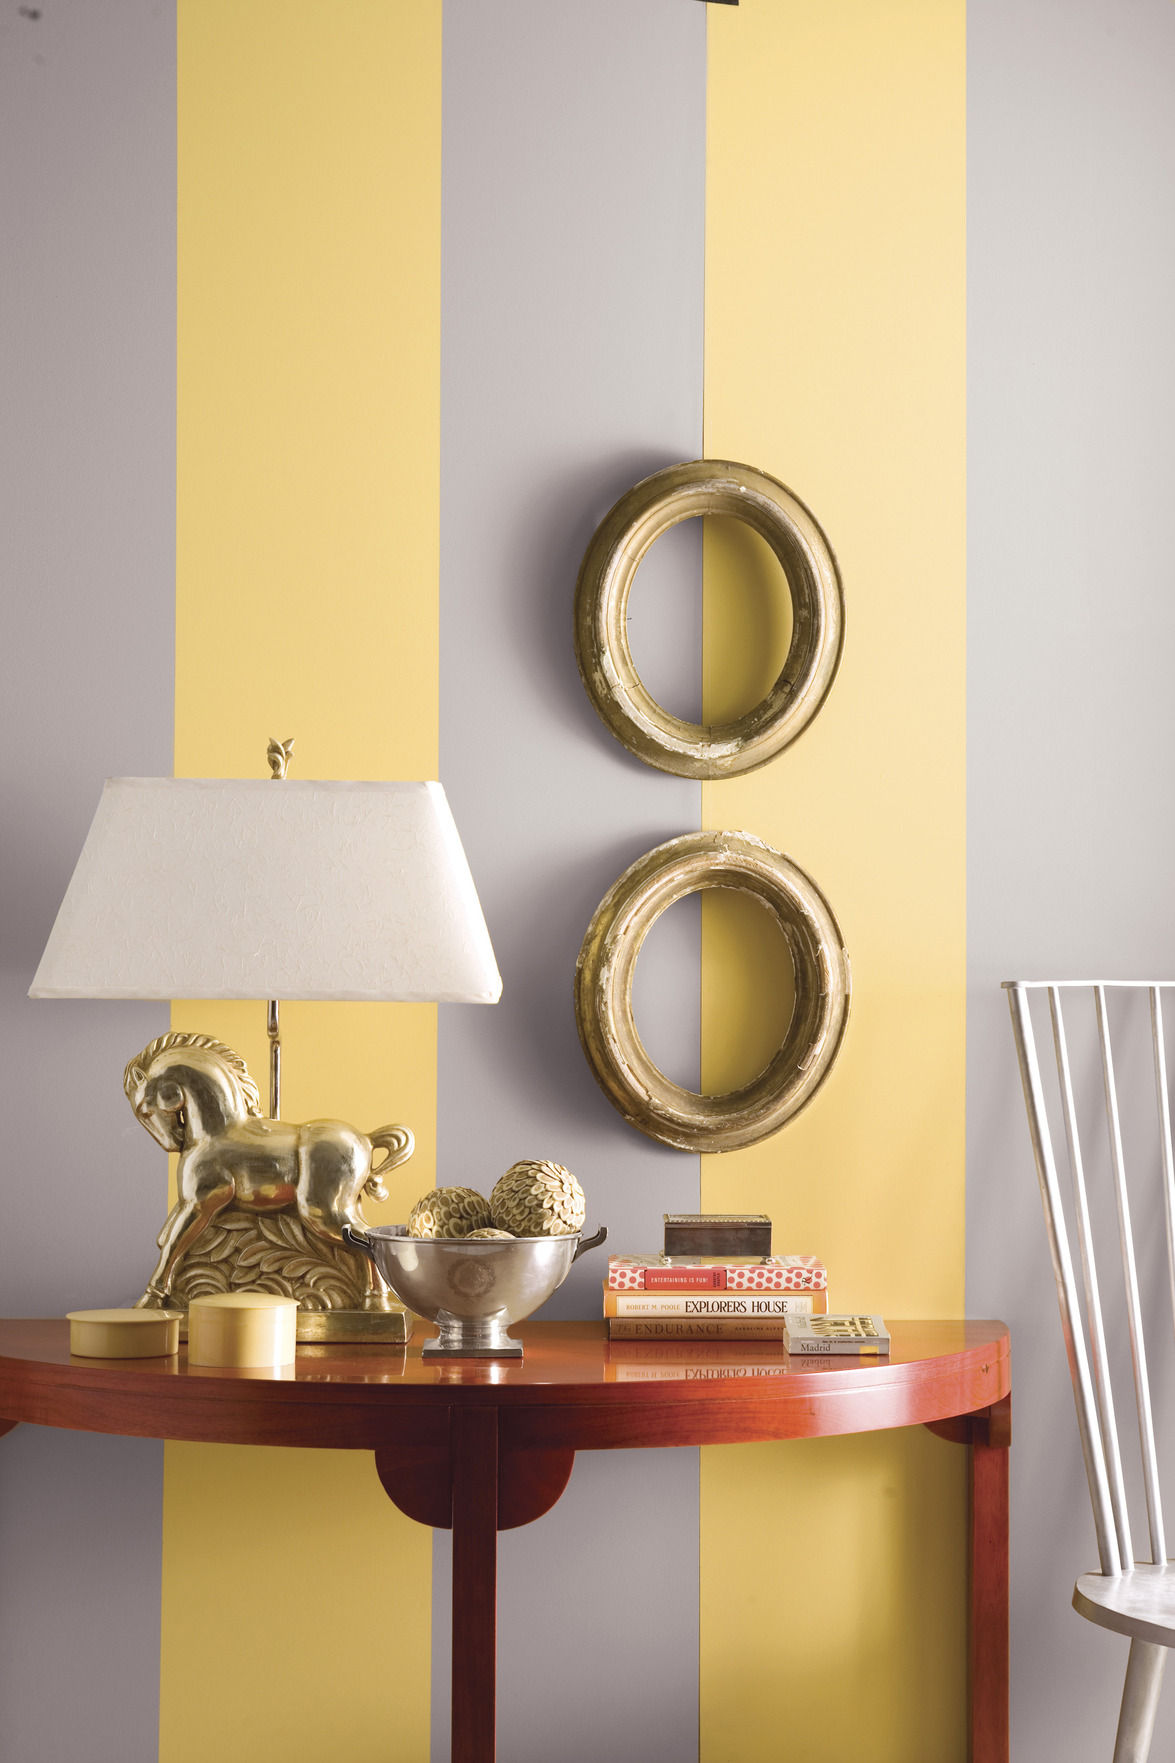 Karen Hysell: Vertical stripes can make ceiling appear higher ...